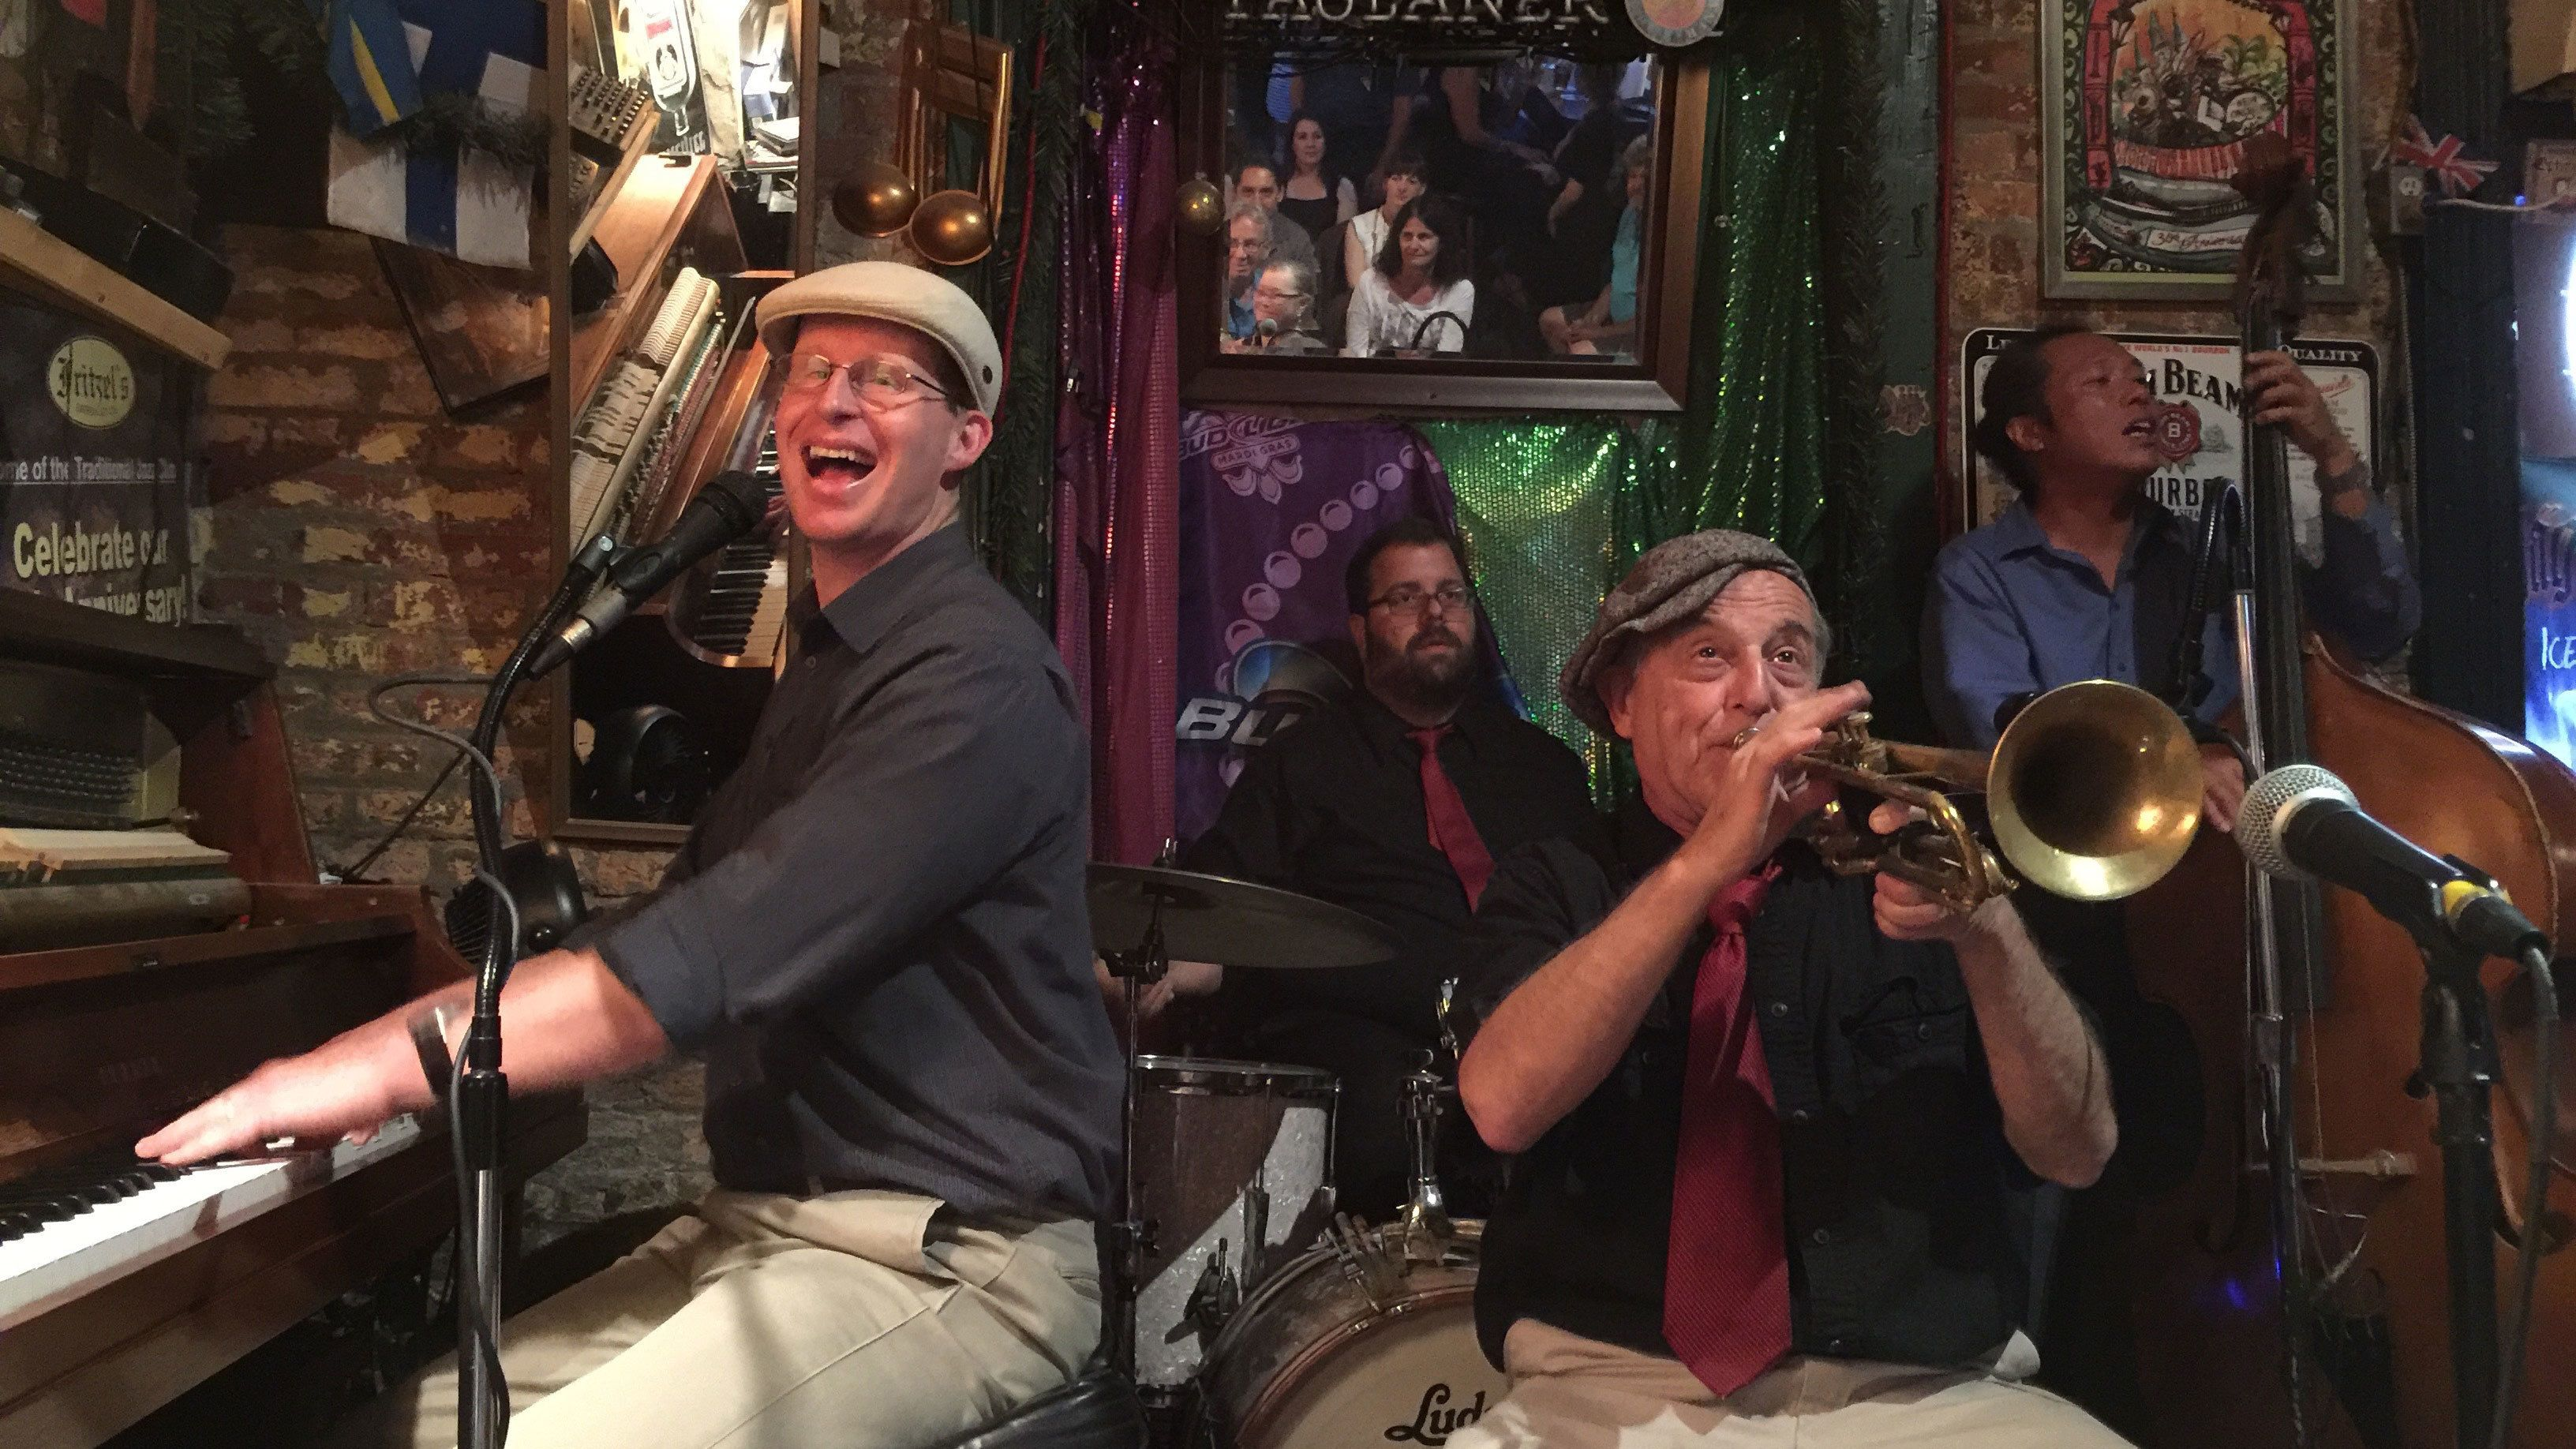 Musicians playing in bar in New Orleans